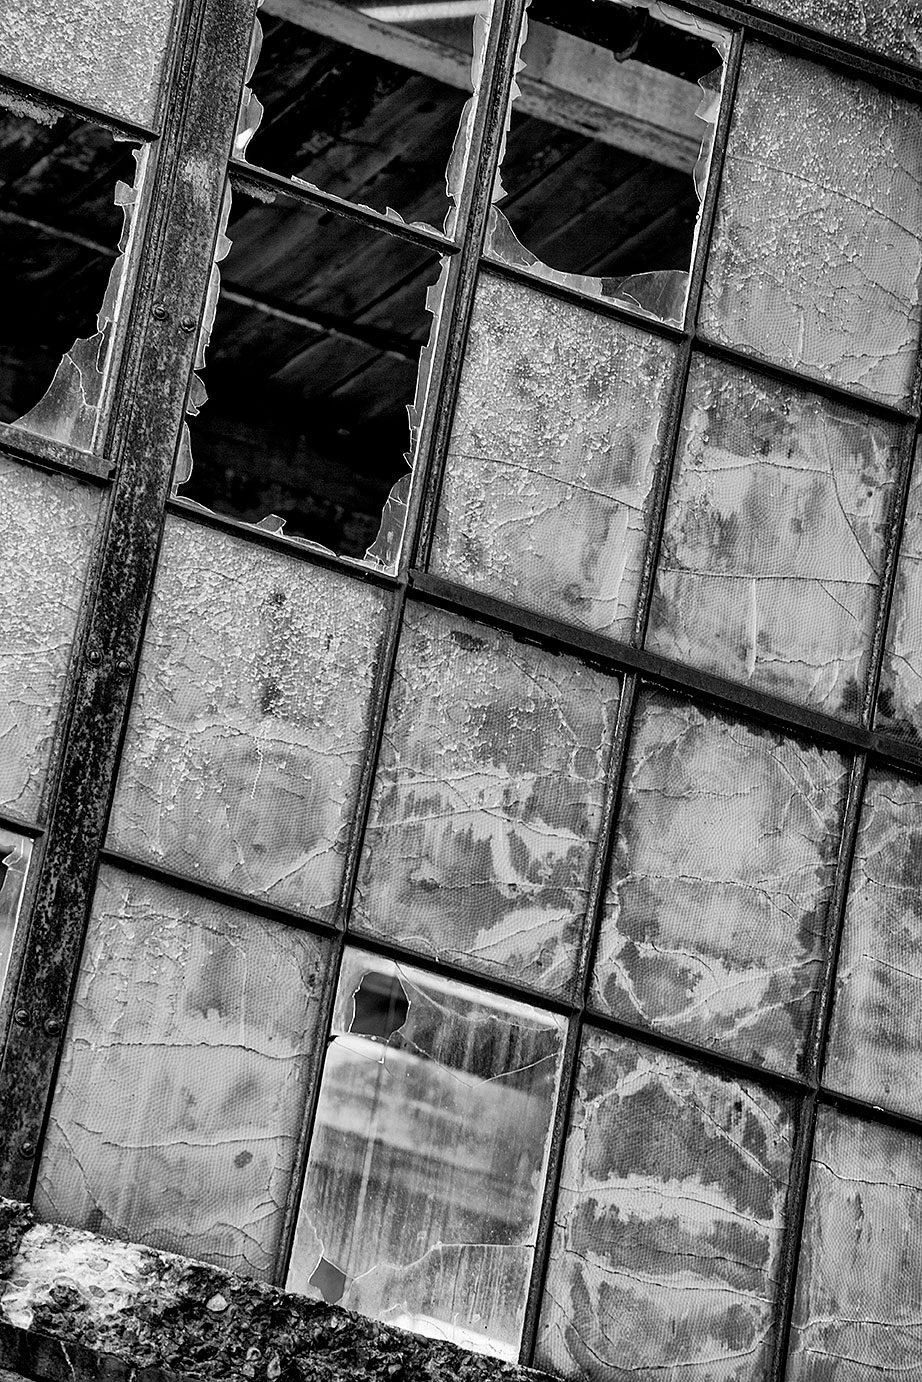 Broken Industrial Windows